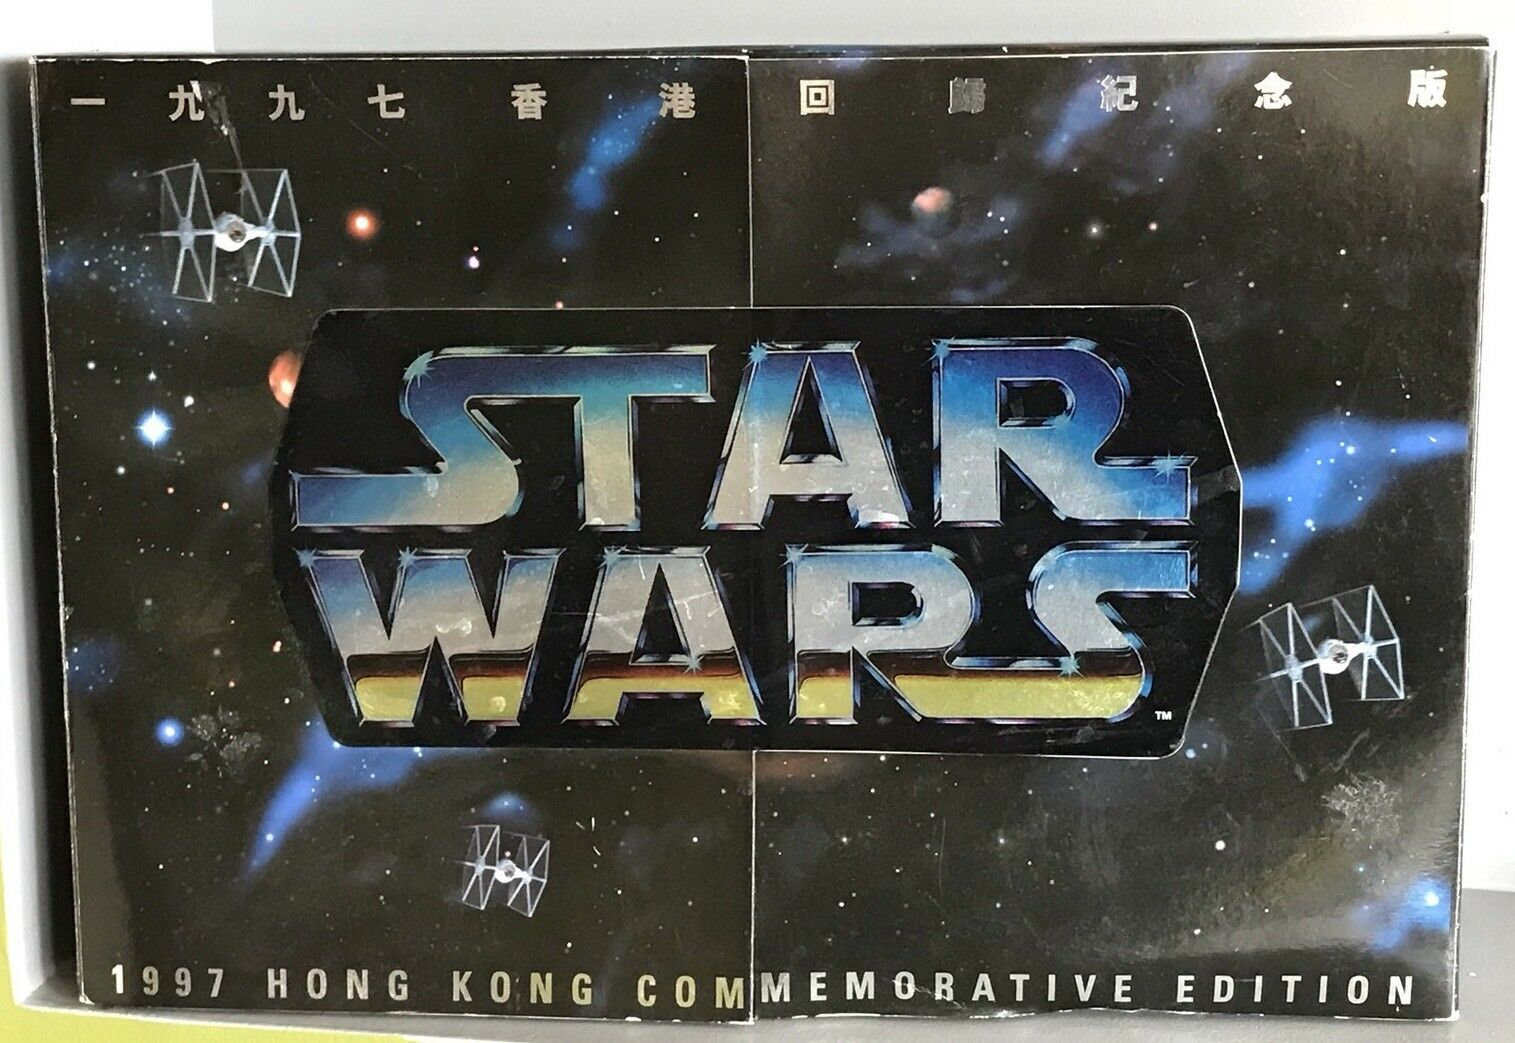 Star Wars Hong Kong Commemorative Edition Like Skywalker Darth Vader Obi Wan Ben